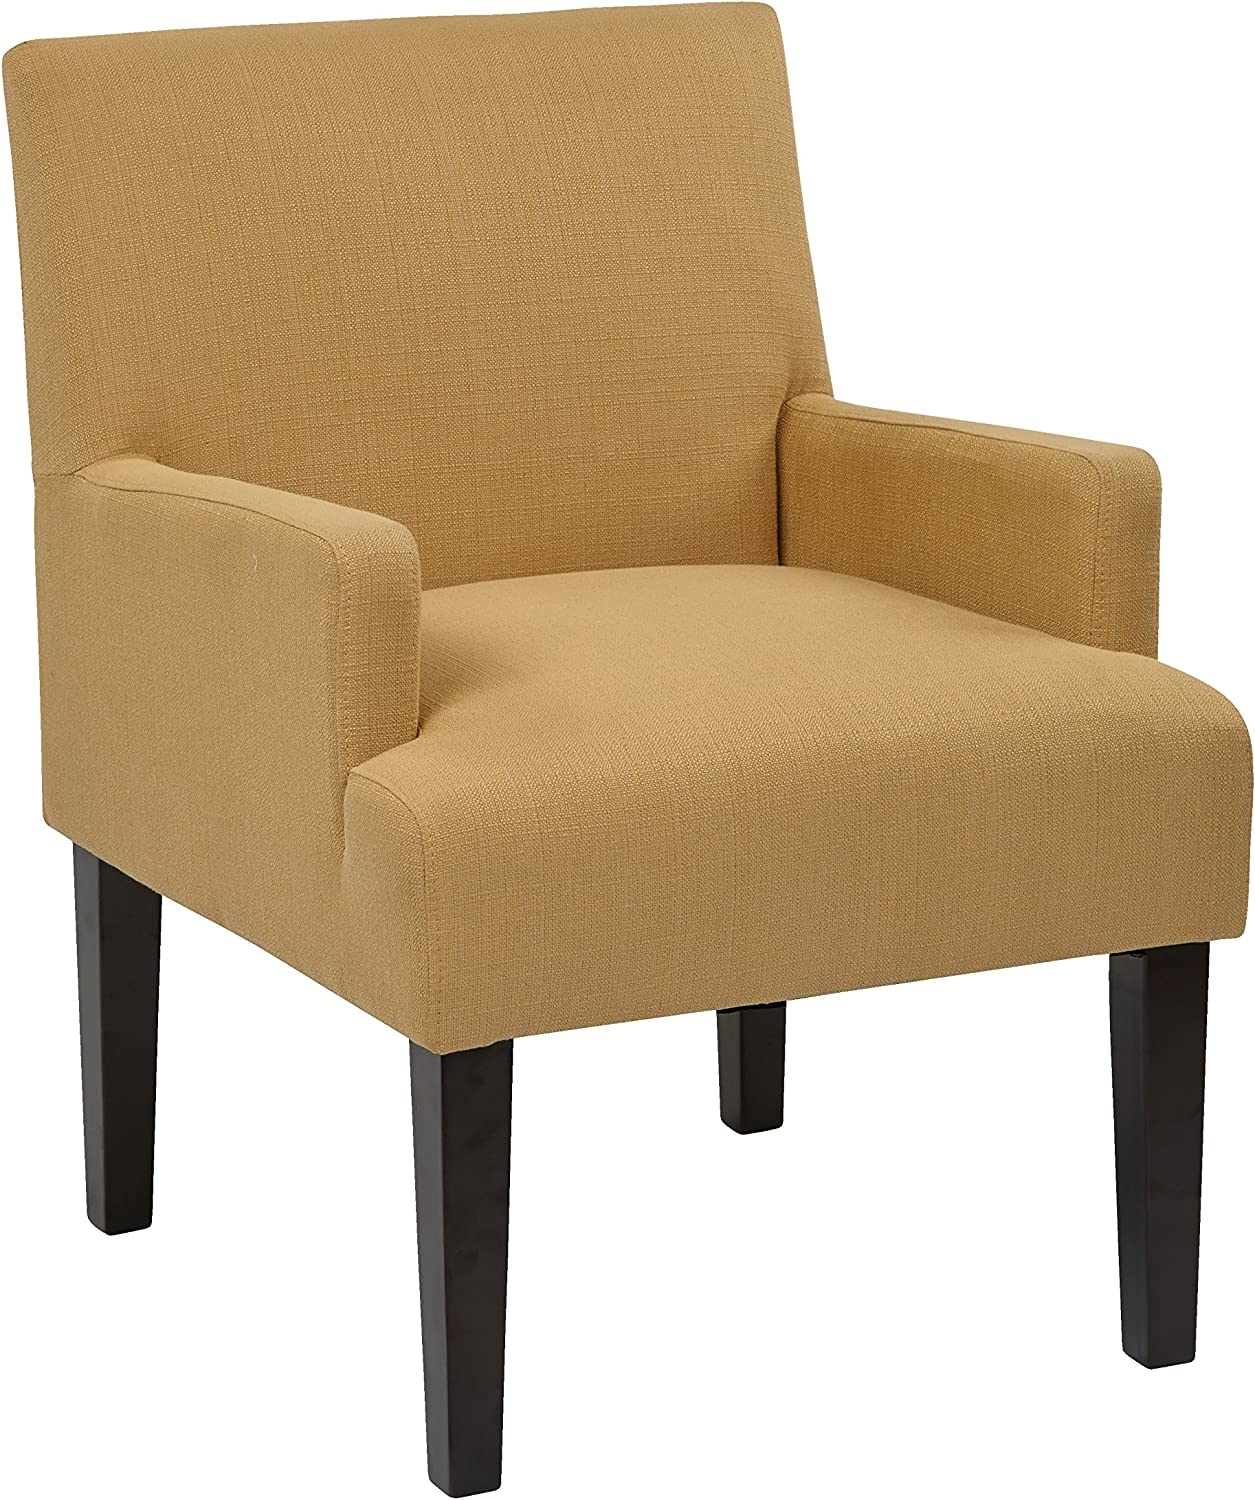 Office Star Main Street Upholstered Guest Chair with Espresso Finish Legs, Woven Wheat